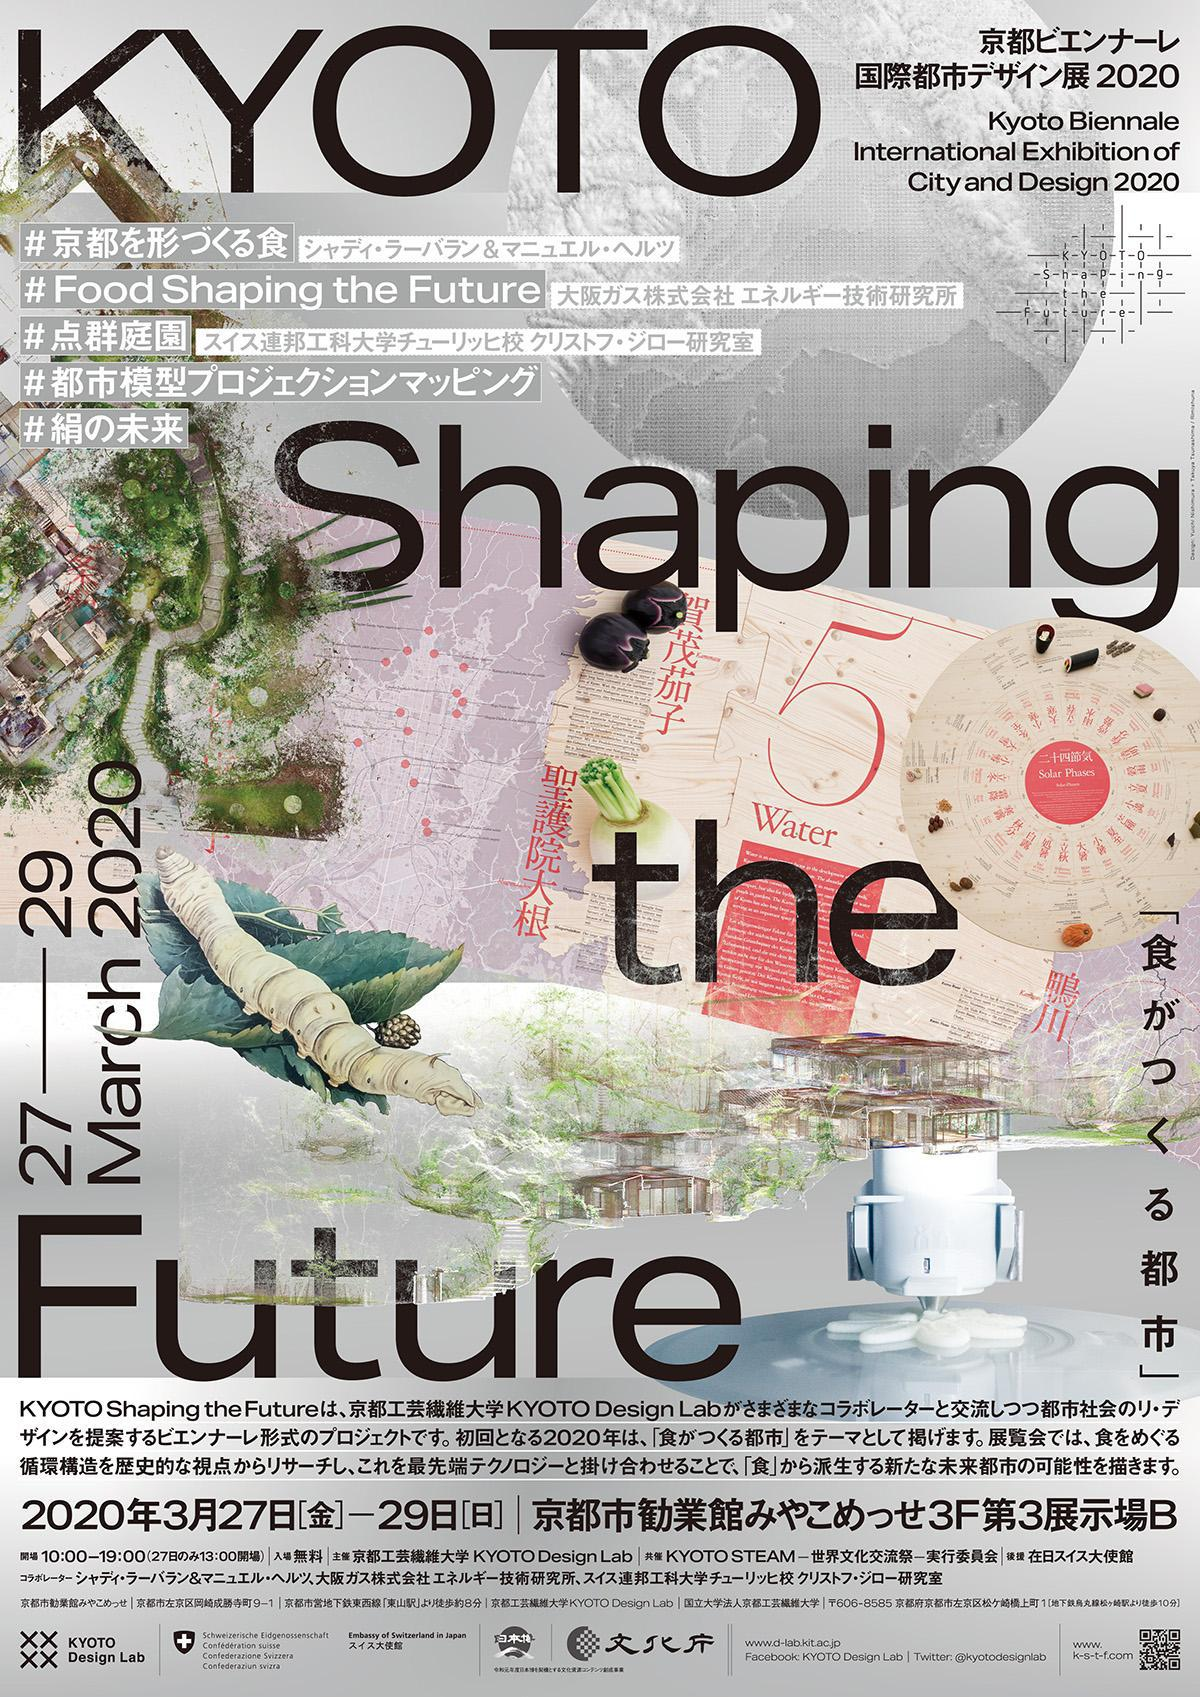 【中止】KYOTO Shaping the Future<br />――食がつくる都市